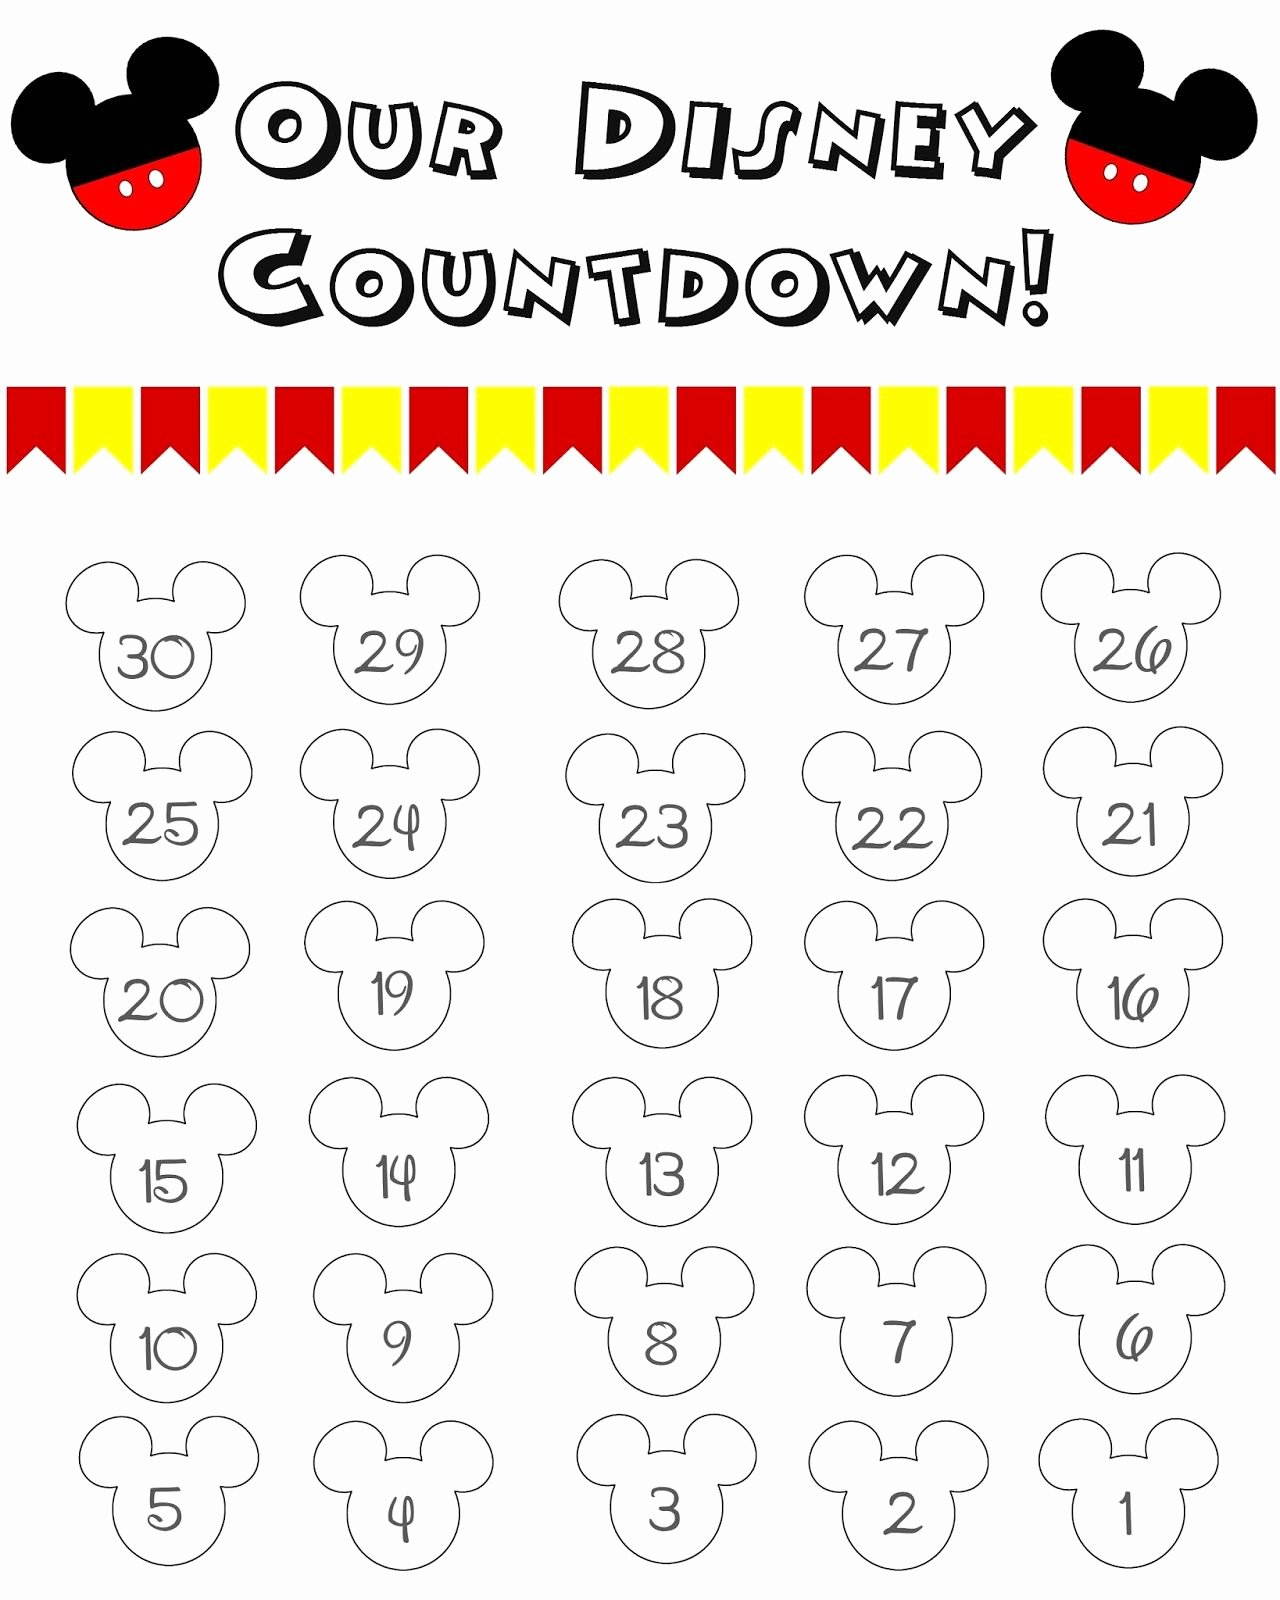 Printable Countdown Calendar Template Elegant Disney World Countdown Calendar Free Printable